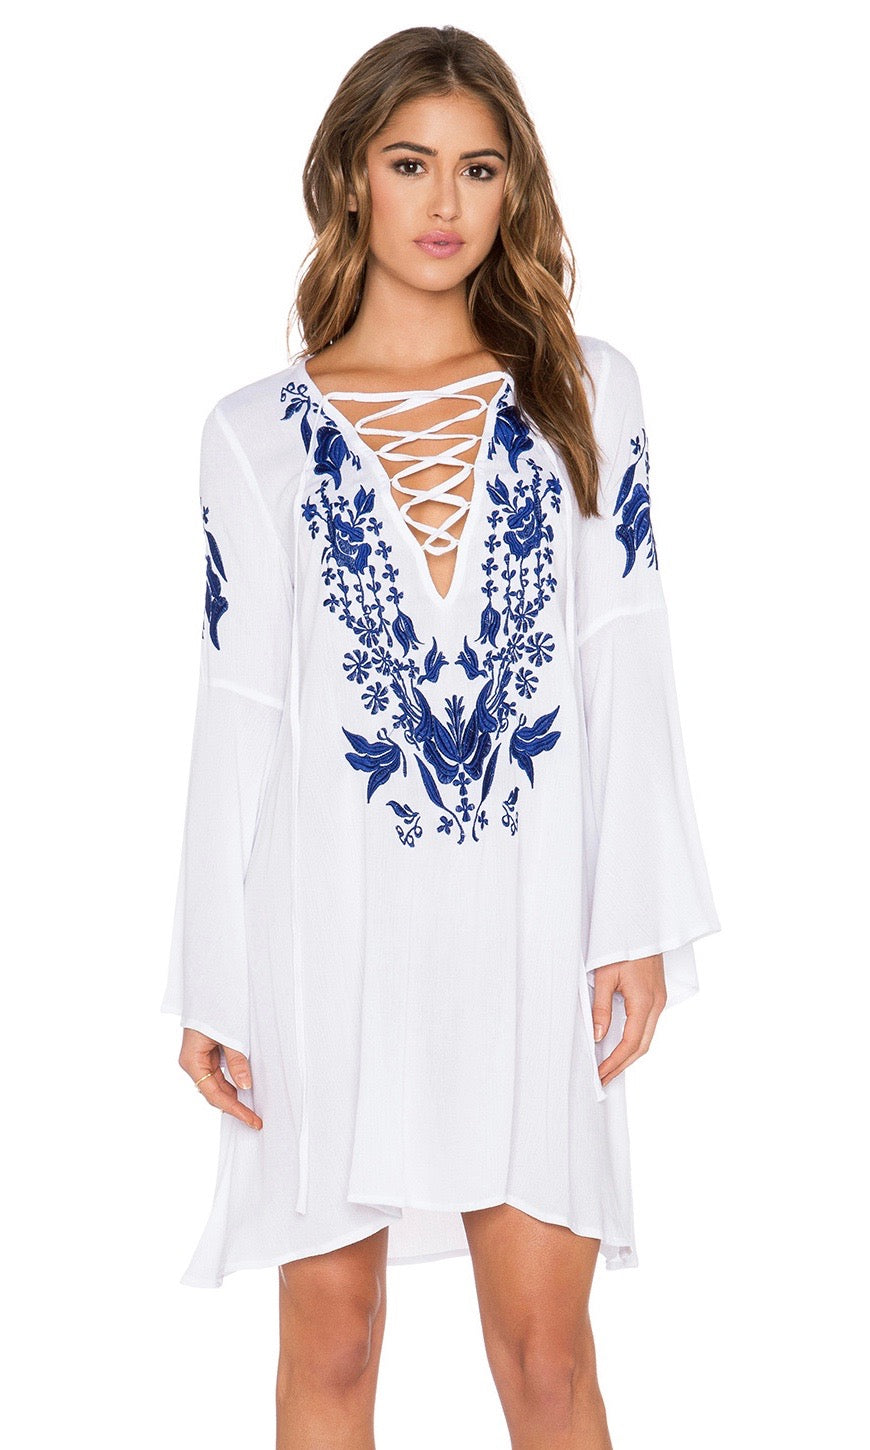 Gypsy Embroidery Dress - Style Me Love